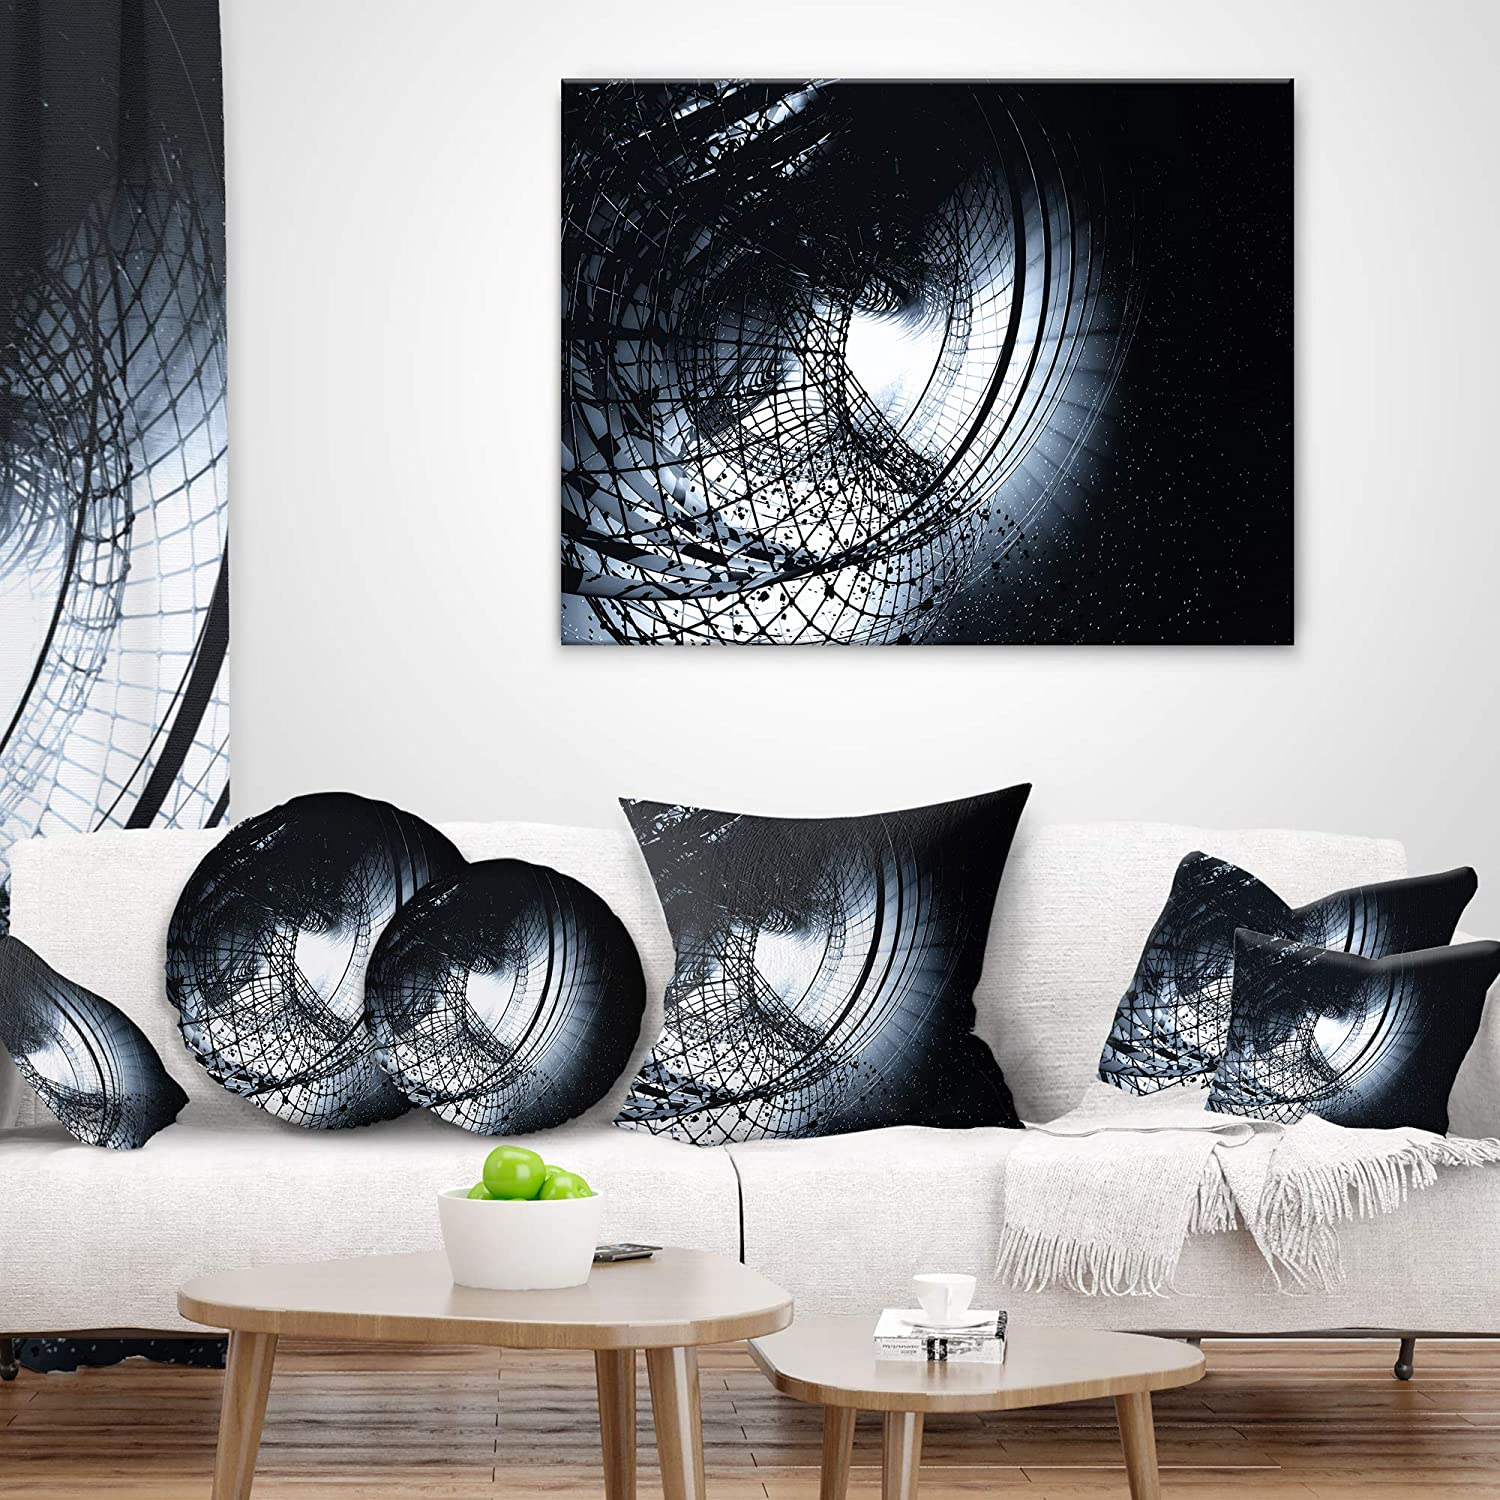 Designart CU8558-16-16-C 3D Art Black Spiral Abstract Round Cushion Cover for Living Room Insert Printed On Both Side Sofa Throw Pillow 16